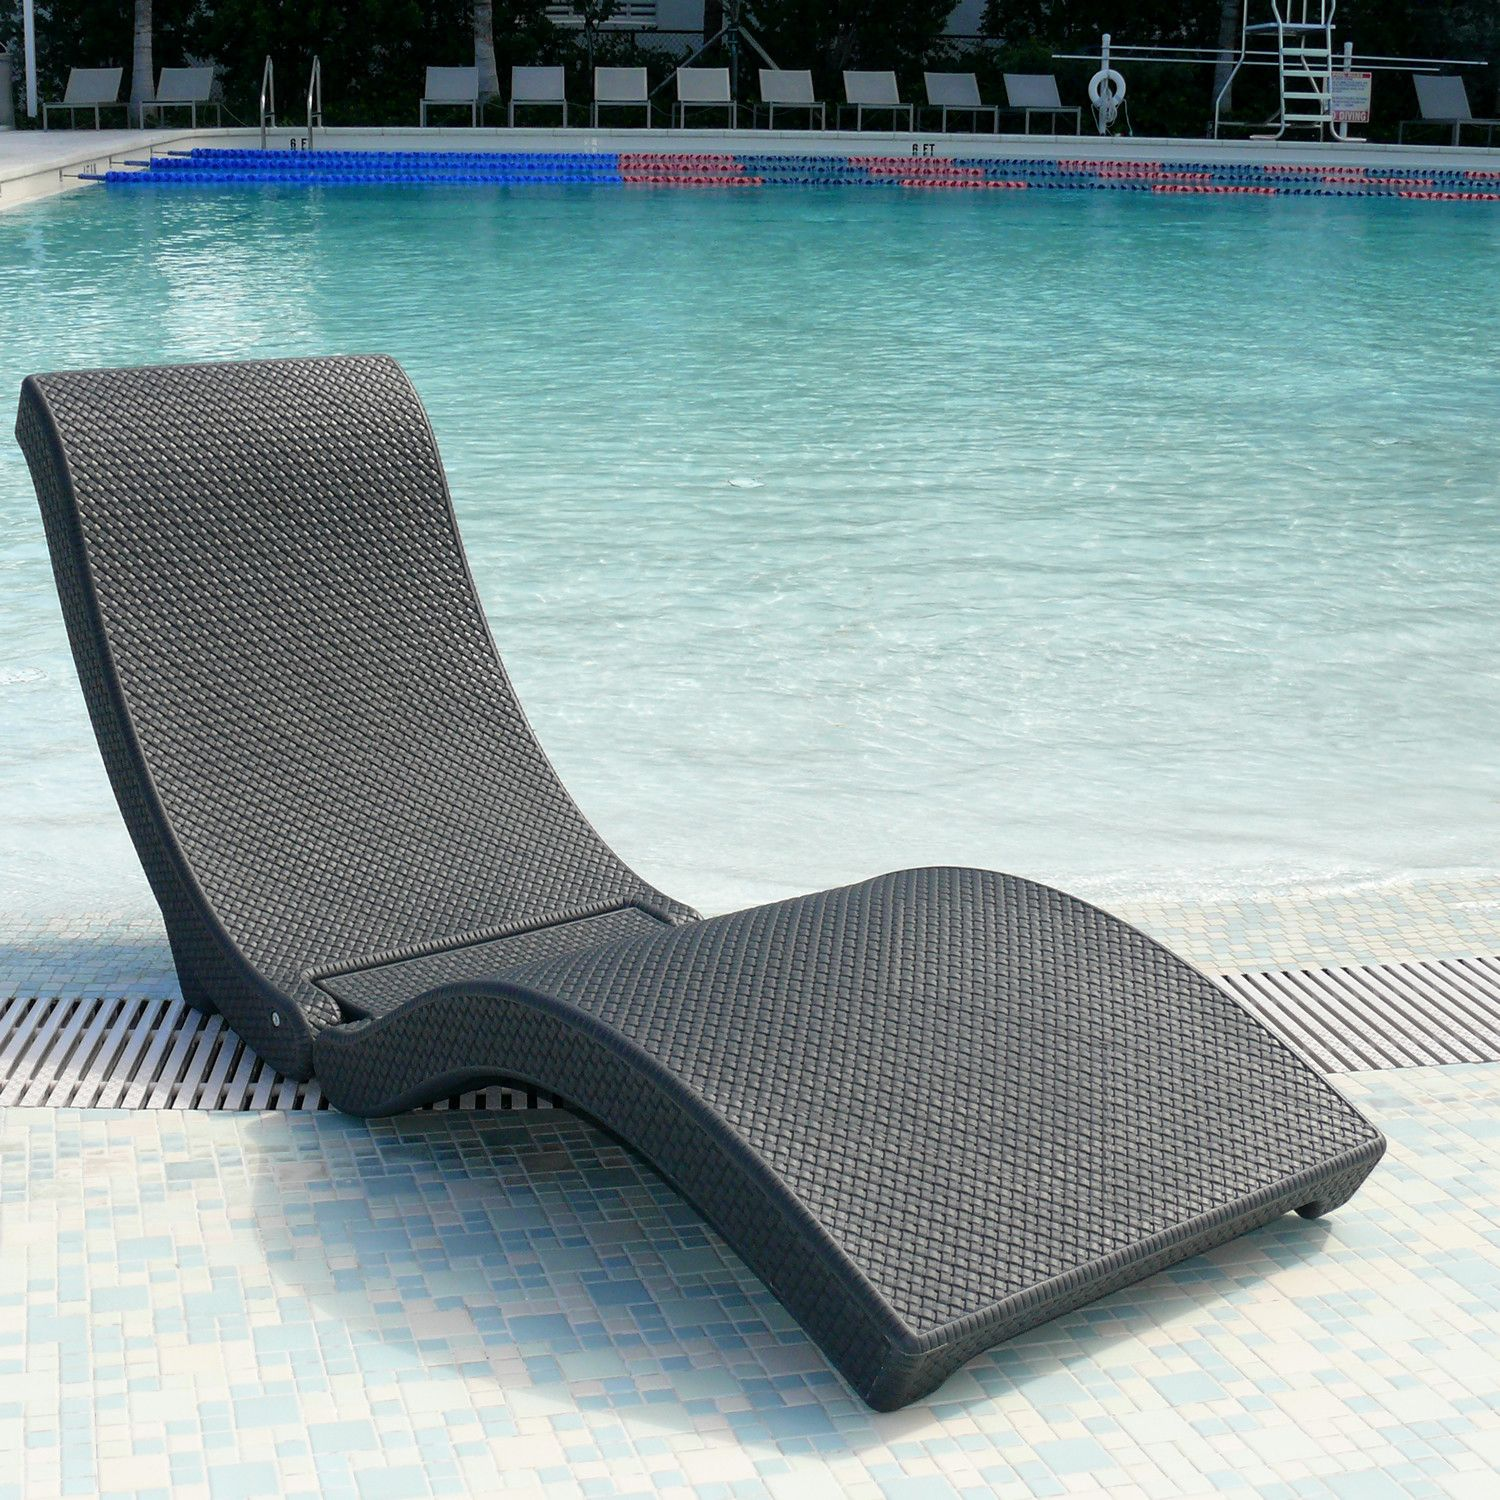 amazing pool chaise lounge chairs awesome designs